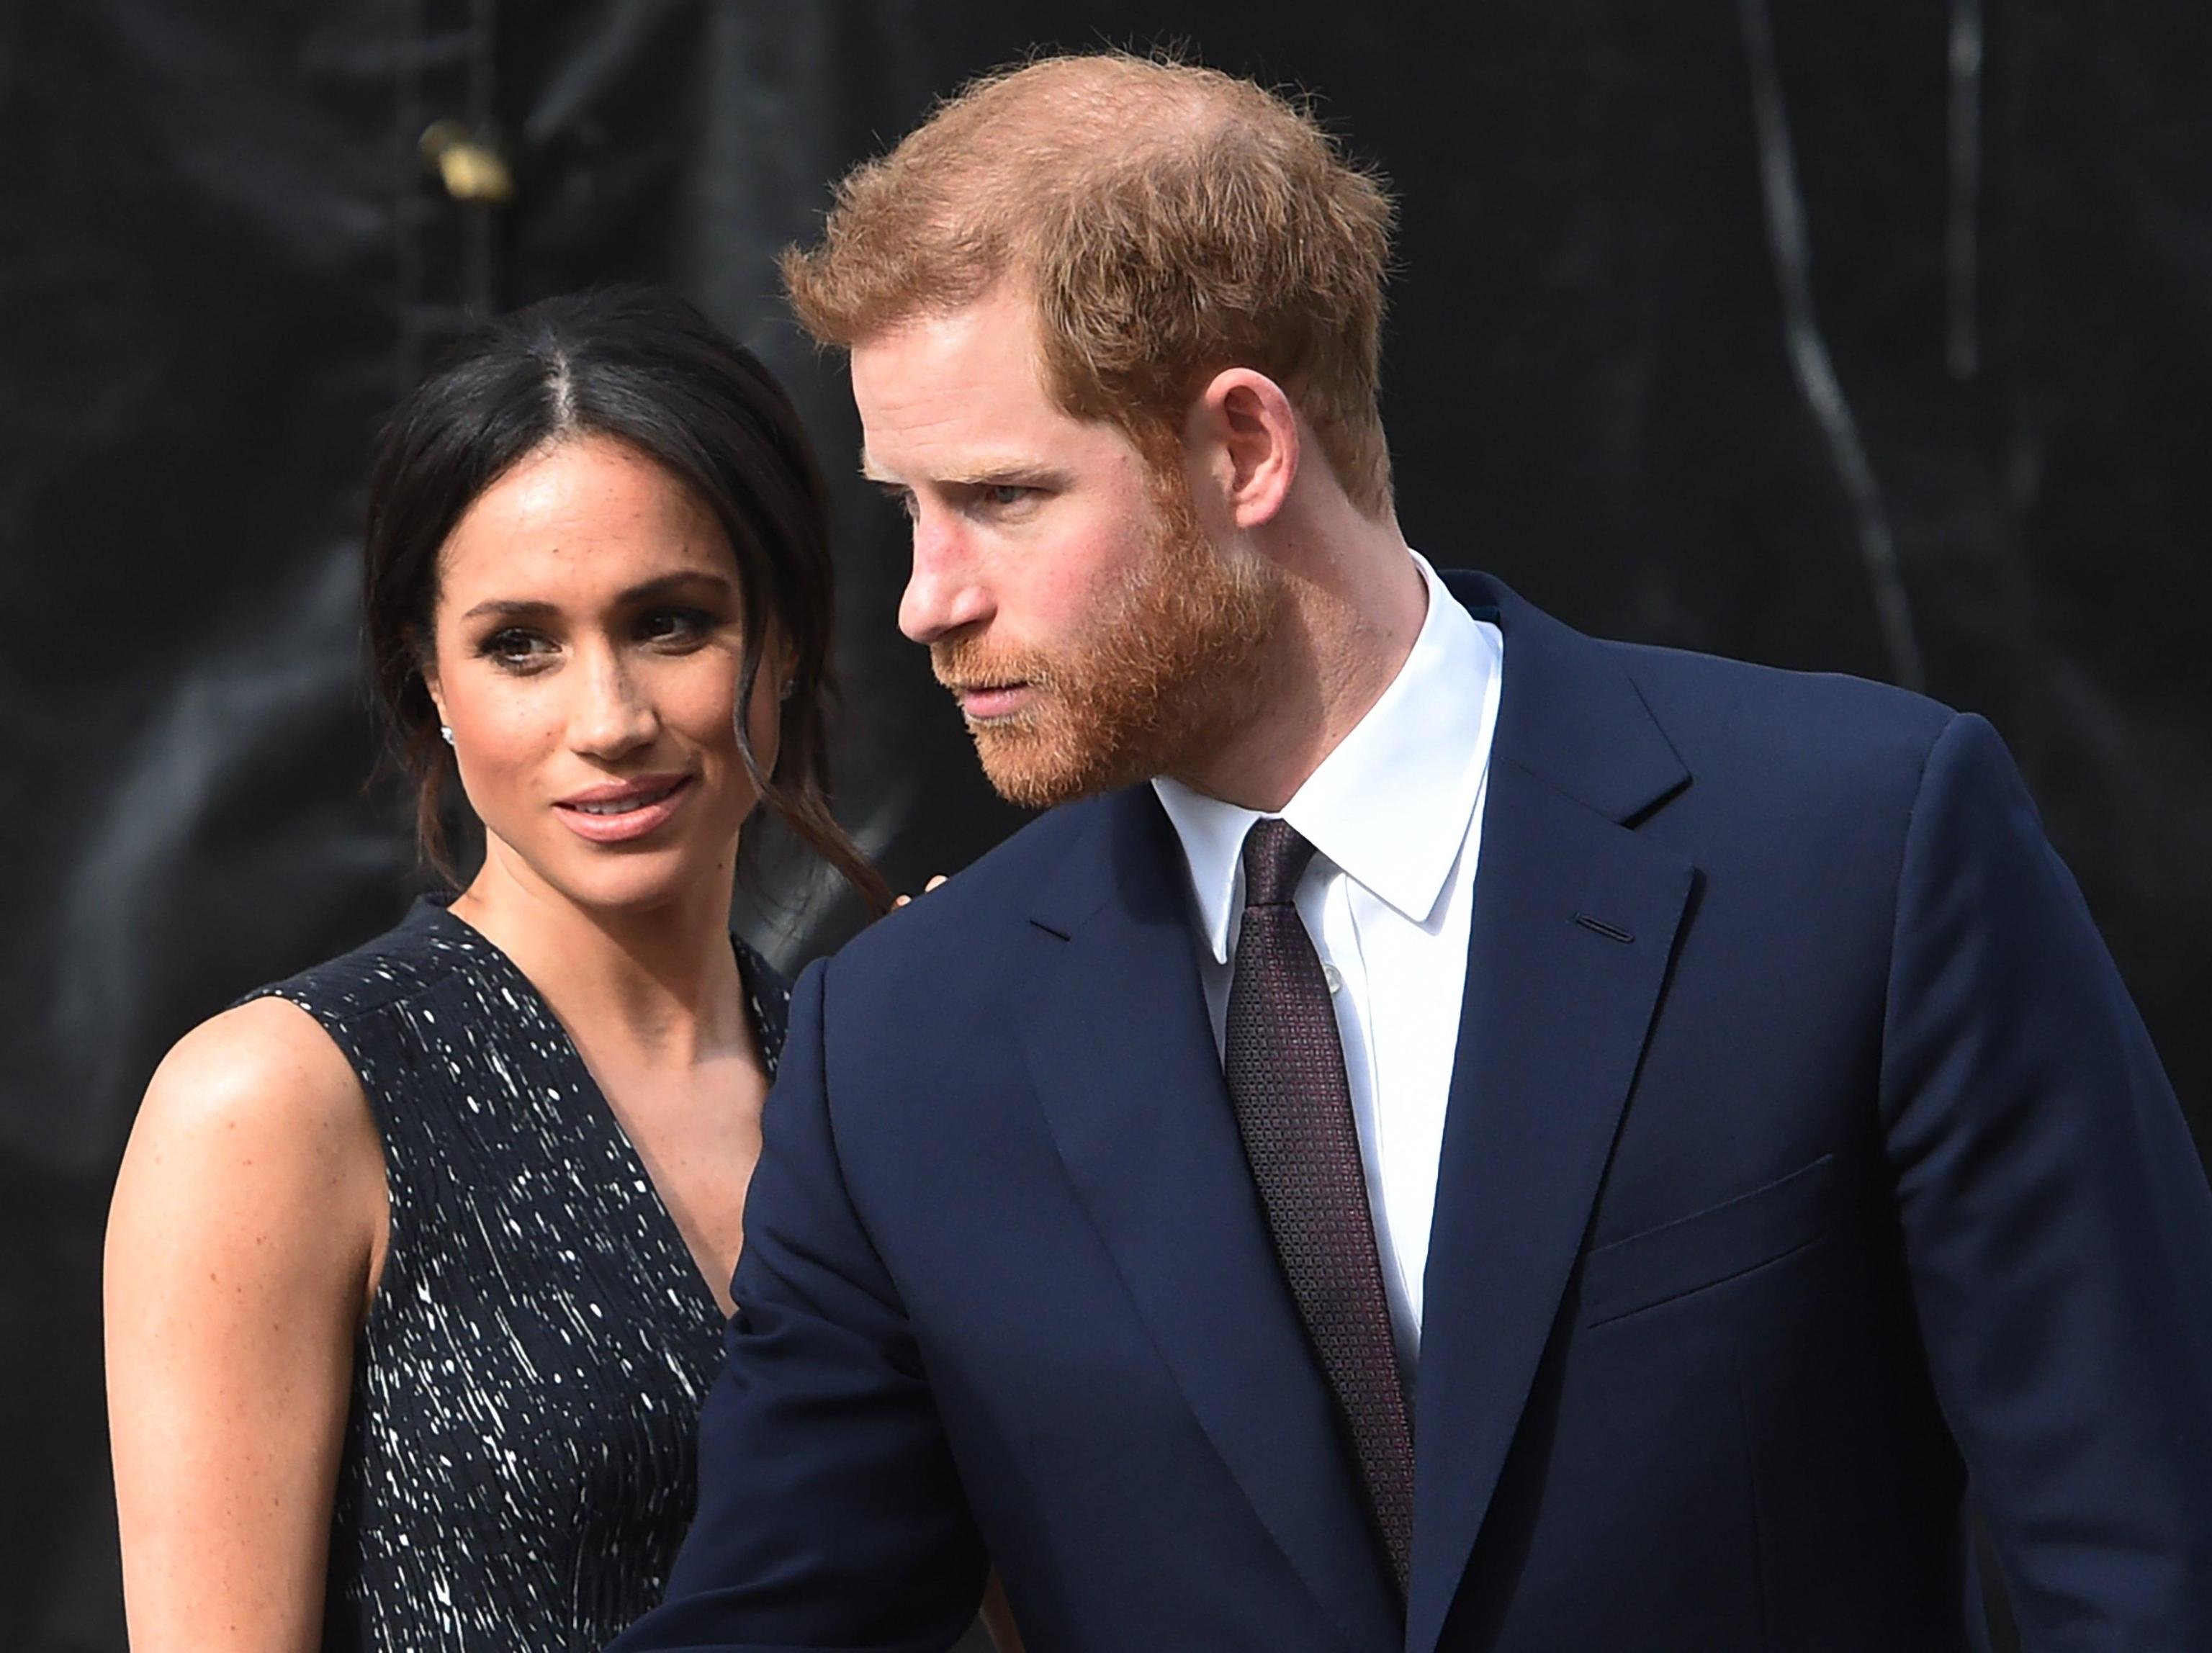 Prince Harry and Meghan Markle attend the Stephen Lawrence memorial in London